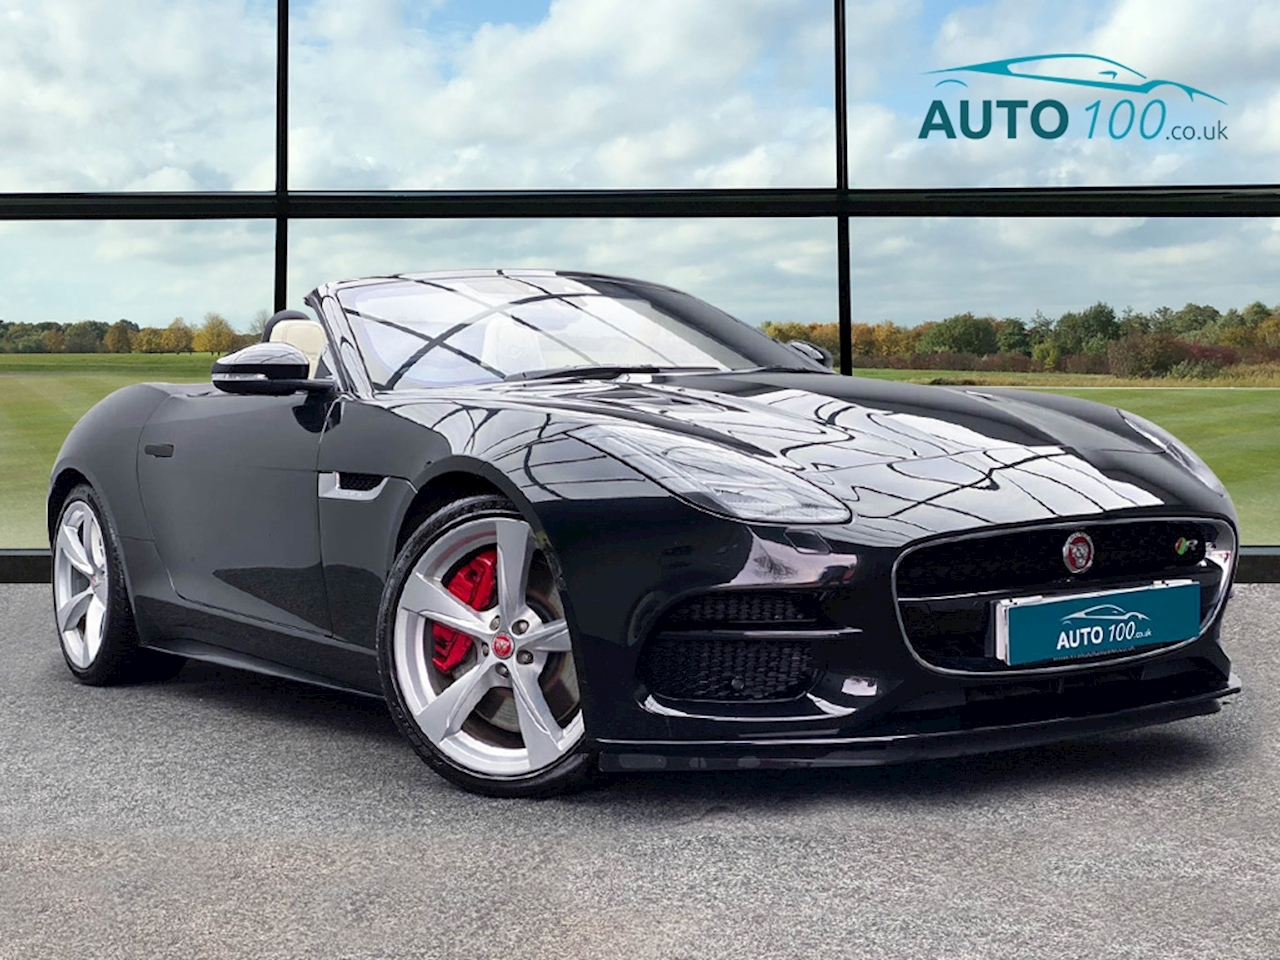 Jaguar F-Type V8 R Awd 5.0 Convertible Automatic Petrol